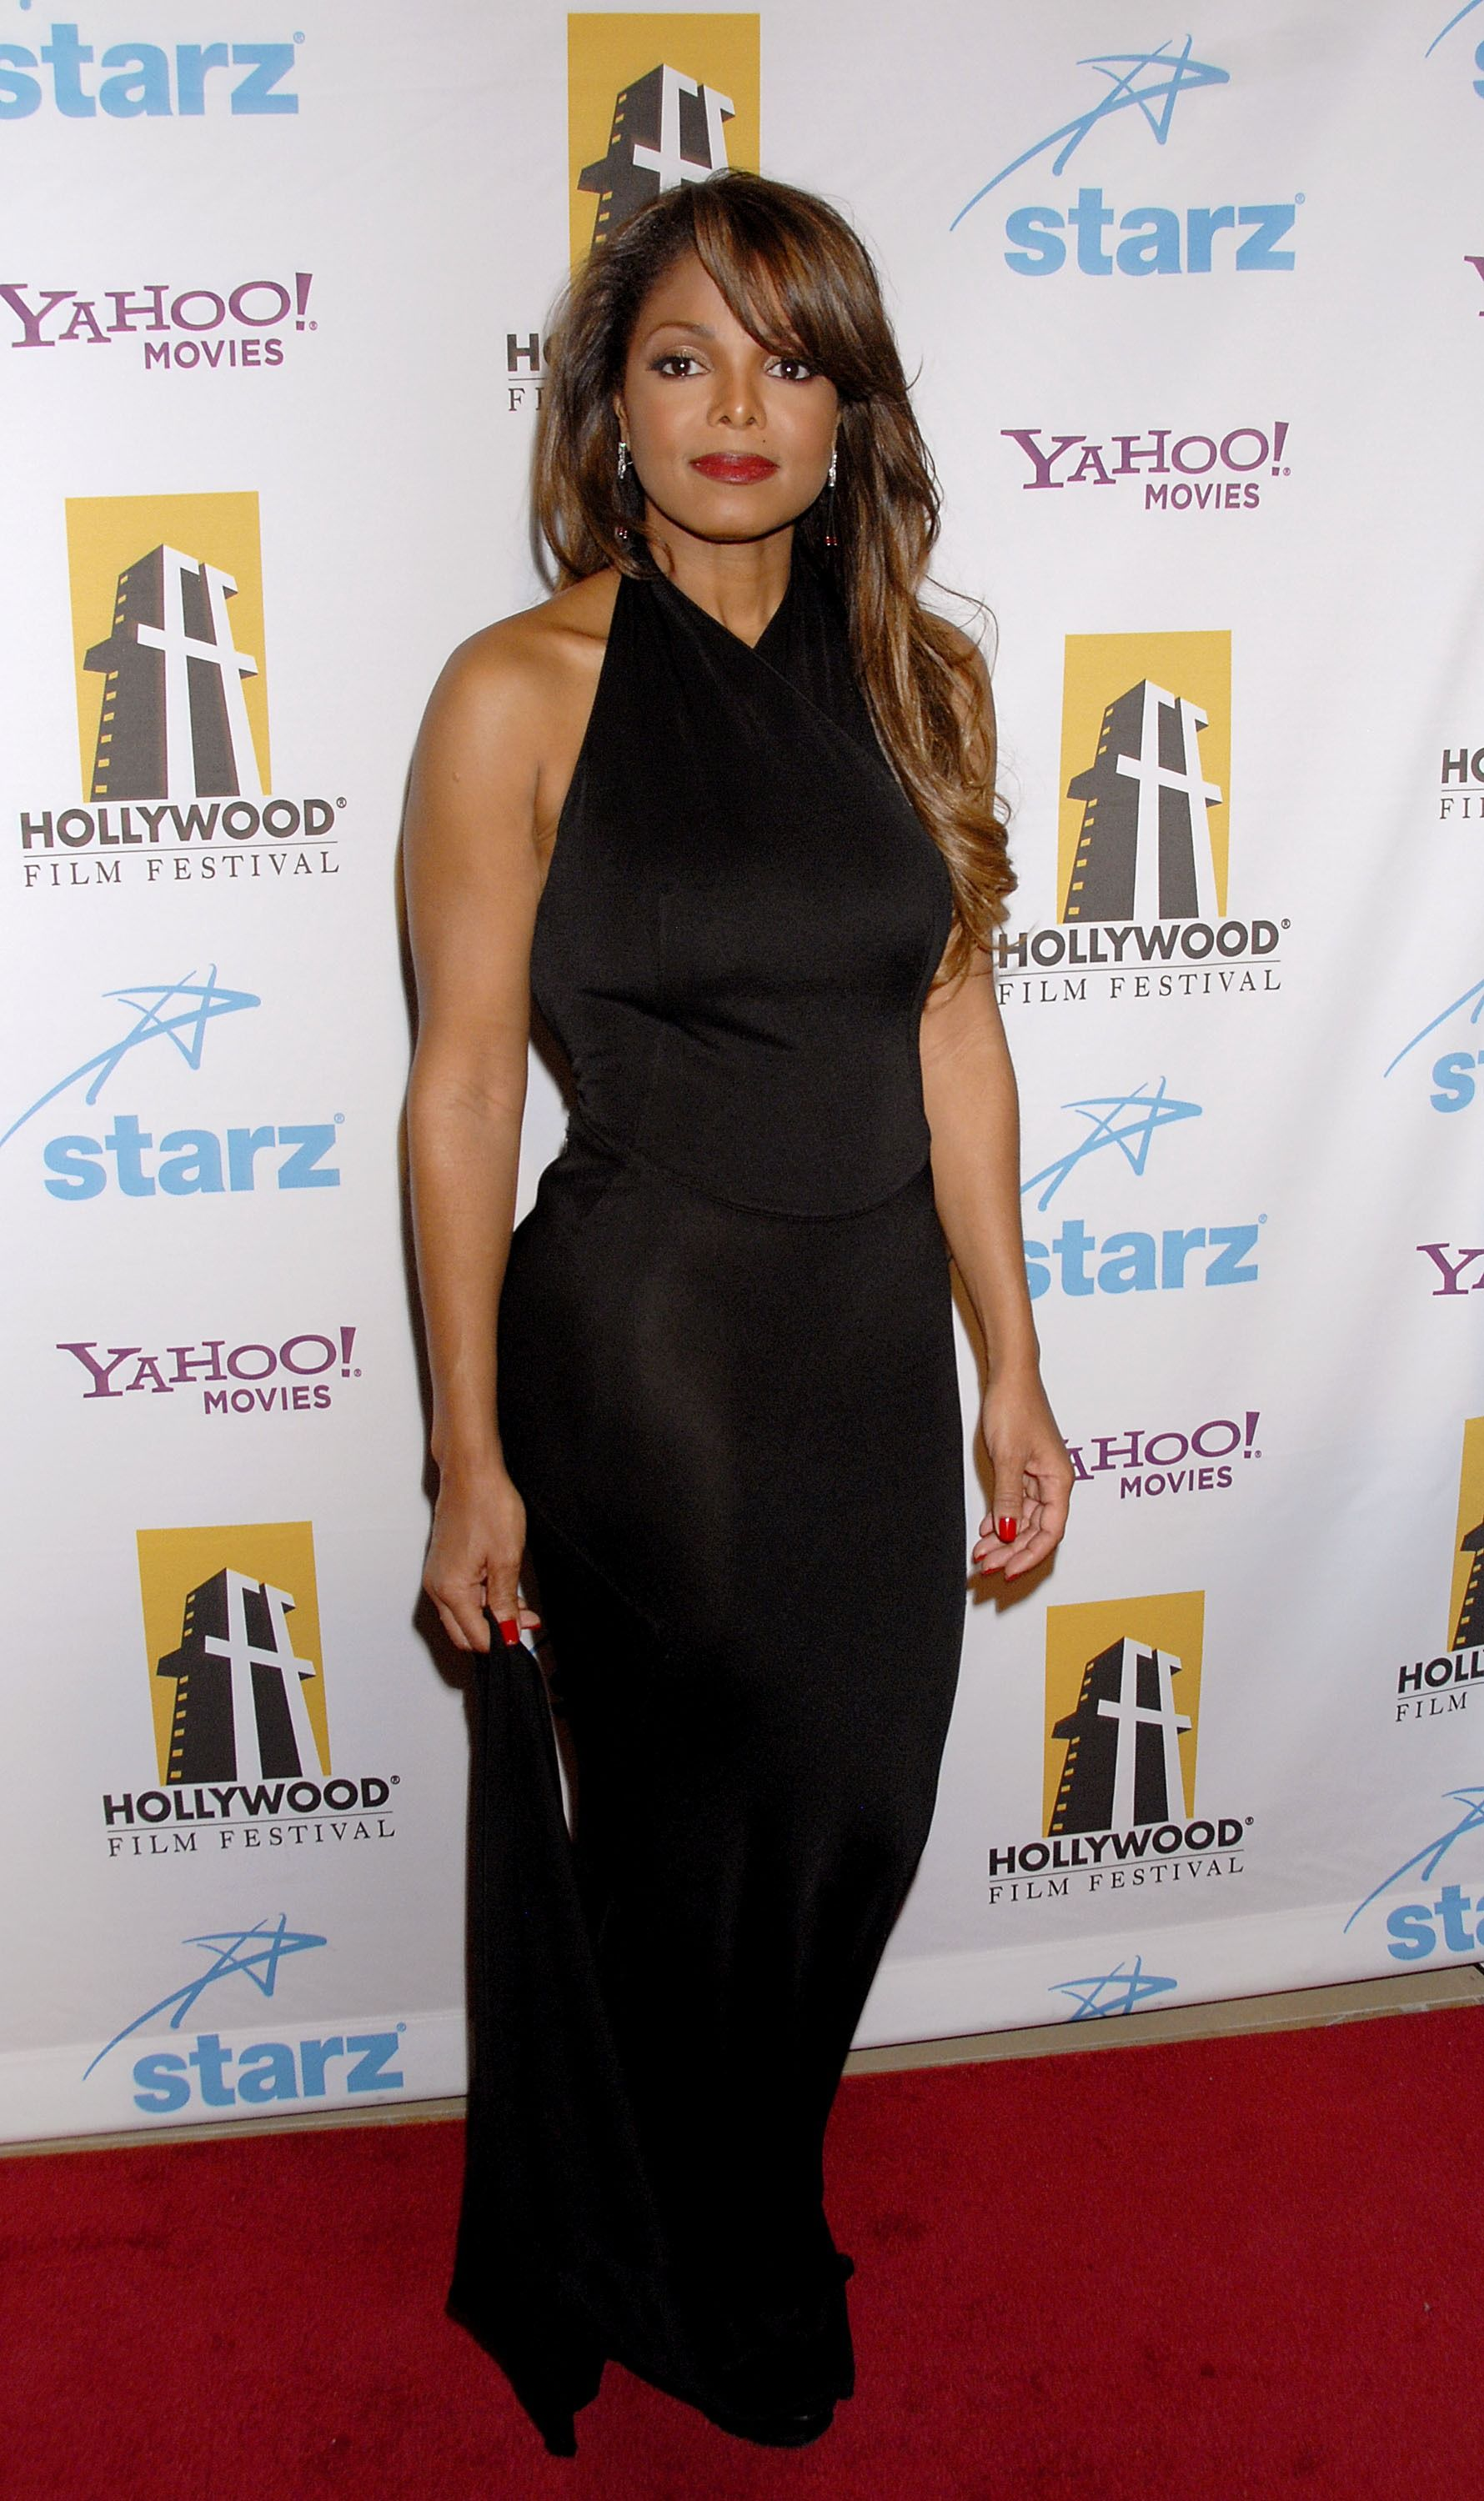 Janet Jackson during the 11th Annual Hollywood Awards held at the Beverly Hilton Hotel on October 22, 2007 in Los Angeles, California. | Source: Getty Images